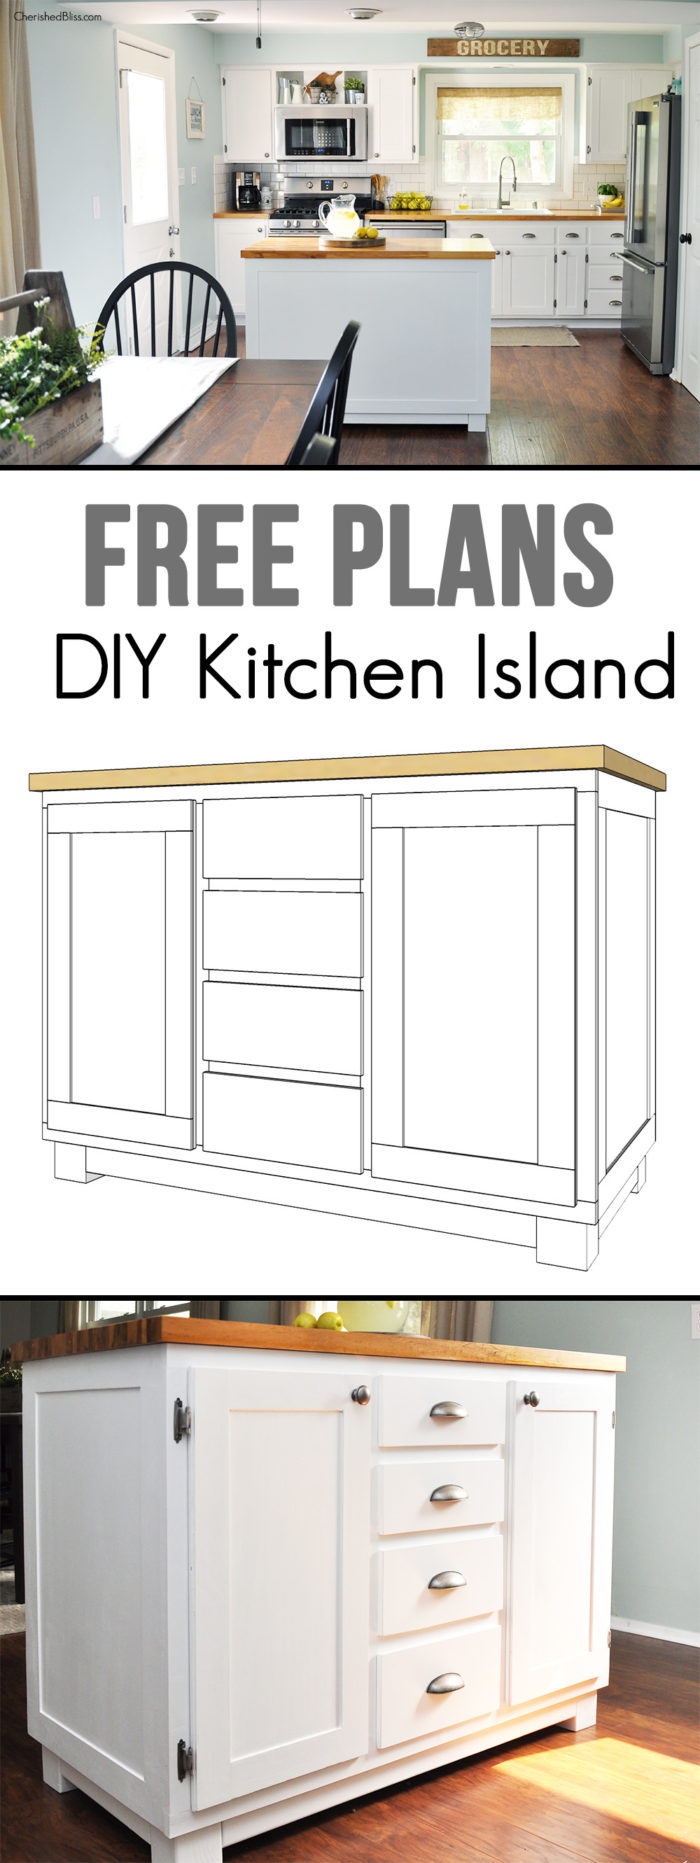 plans for building a kitchen island how to build a diy kitchen island cherished bliss 27386